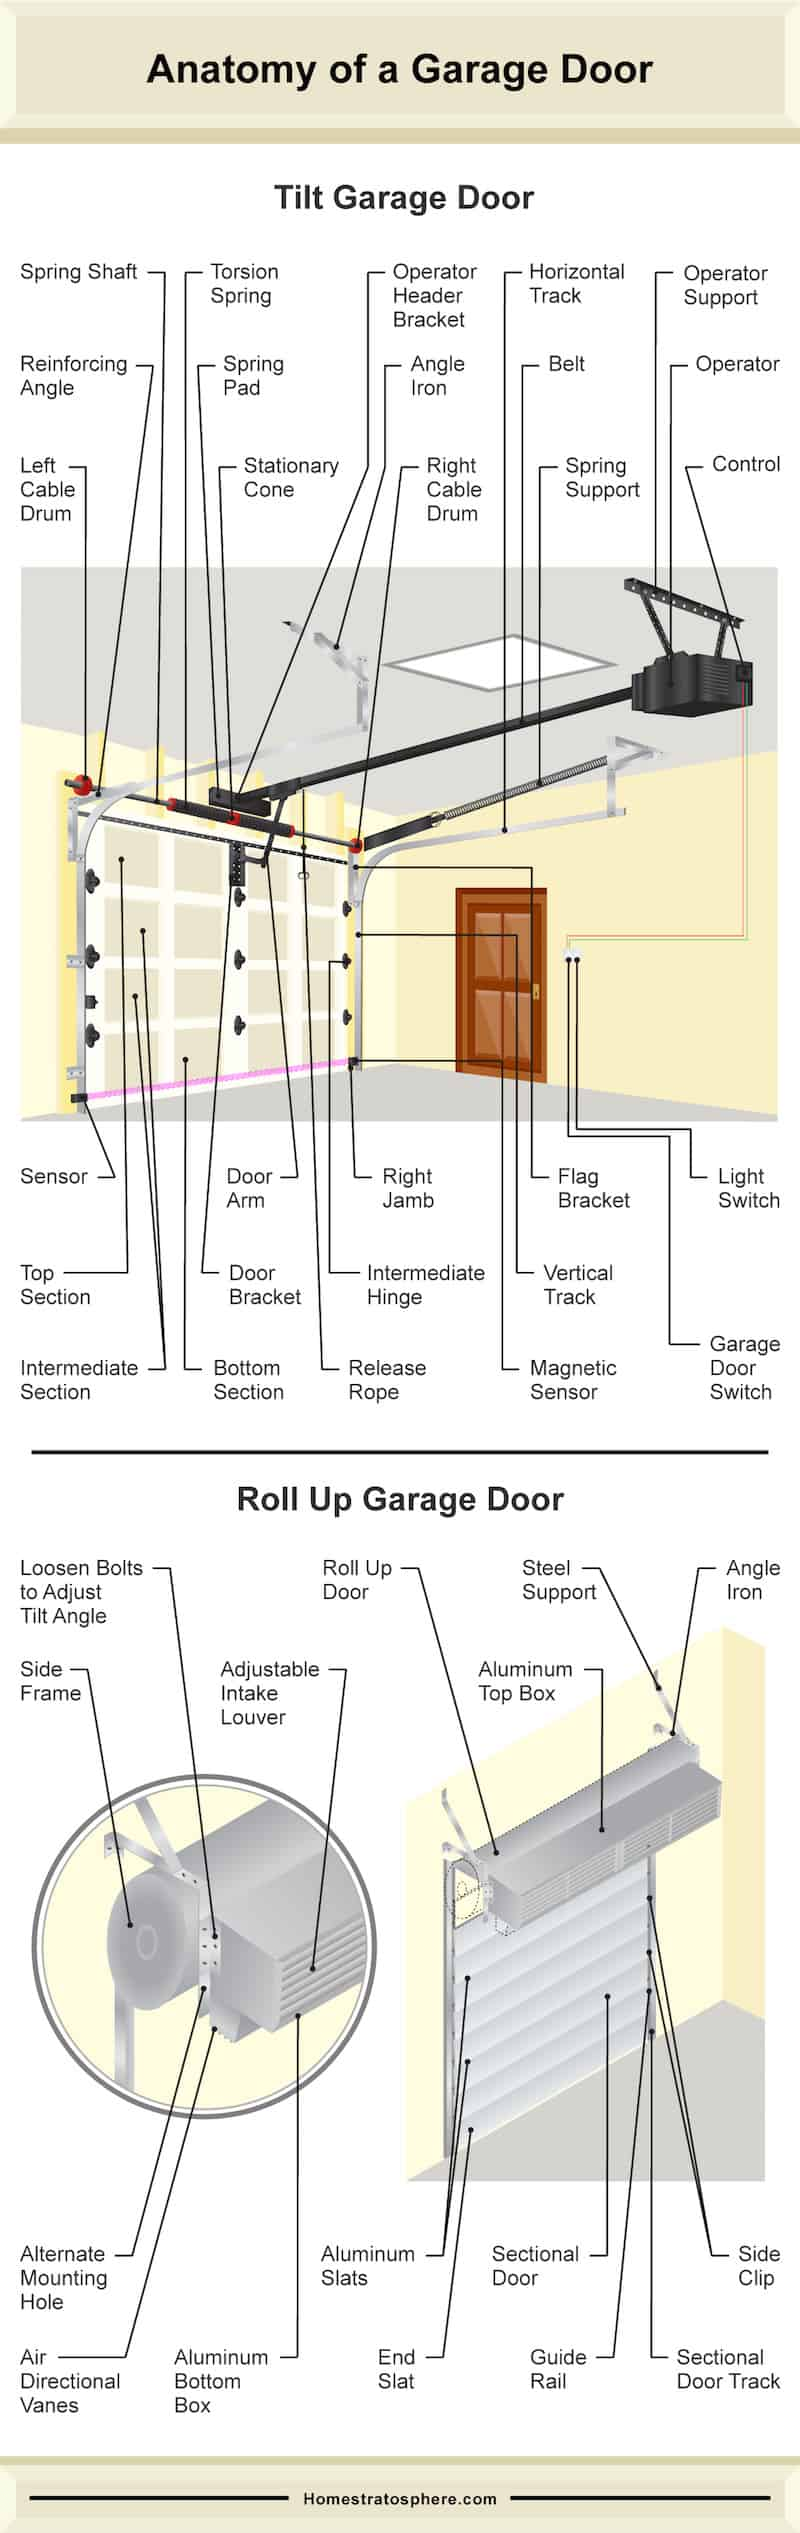 Diagram showing anatomy of a roll up and tilt style garage doo